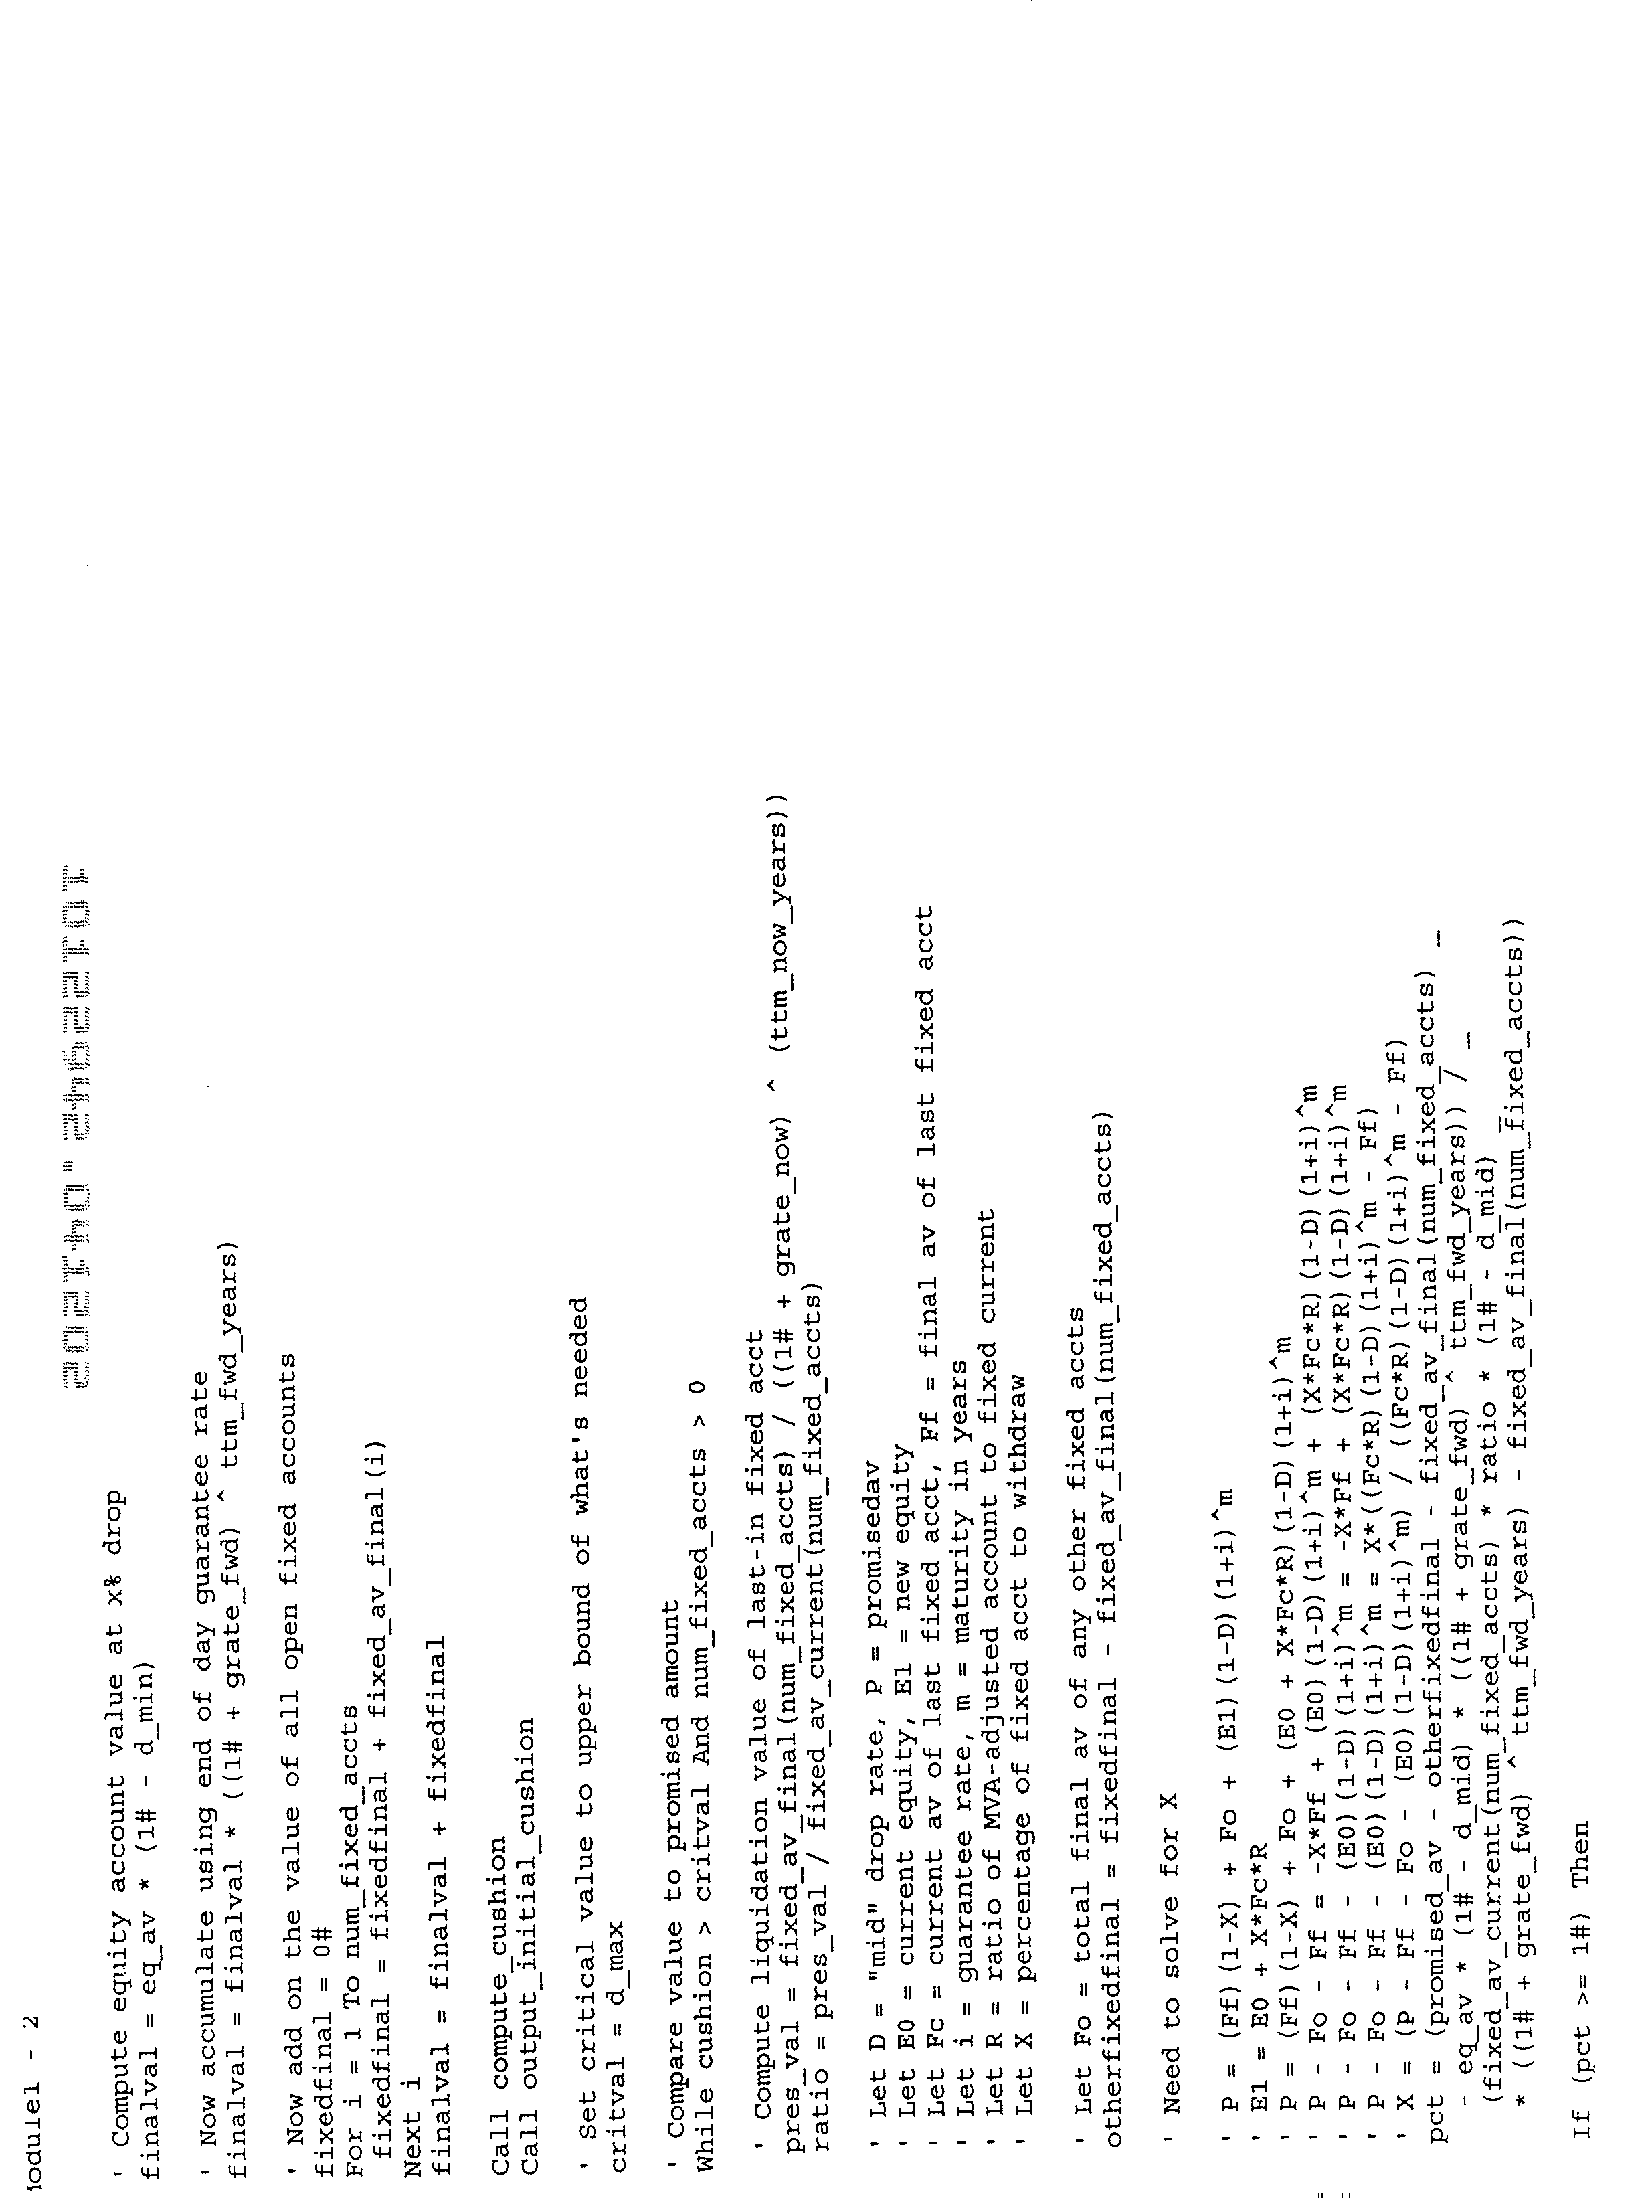 US20020174042A1 - System, method, and computer program